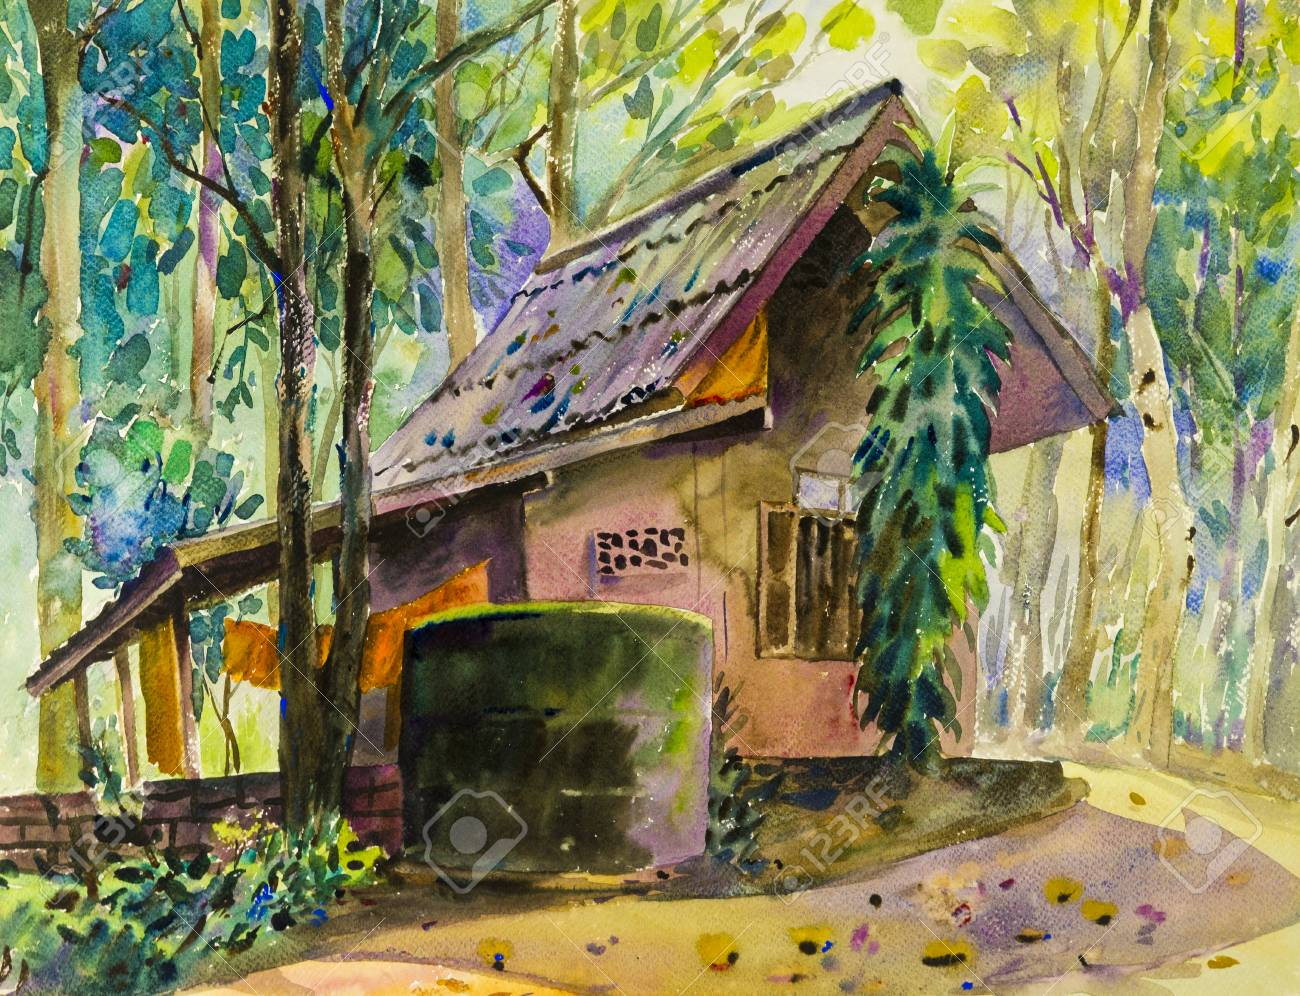 watercolor landscape original painting colorful of house in forest stock photo picture and royalty free image image 94969641 watercolor landscape original painting colorful of house in forest